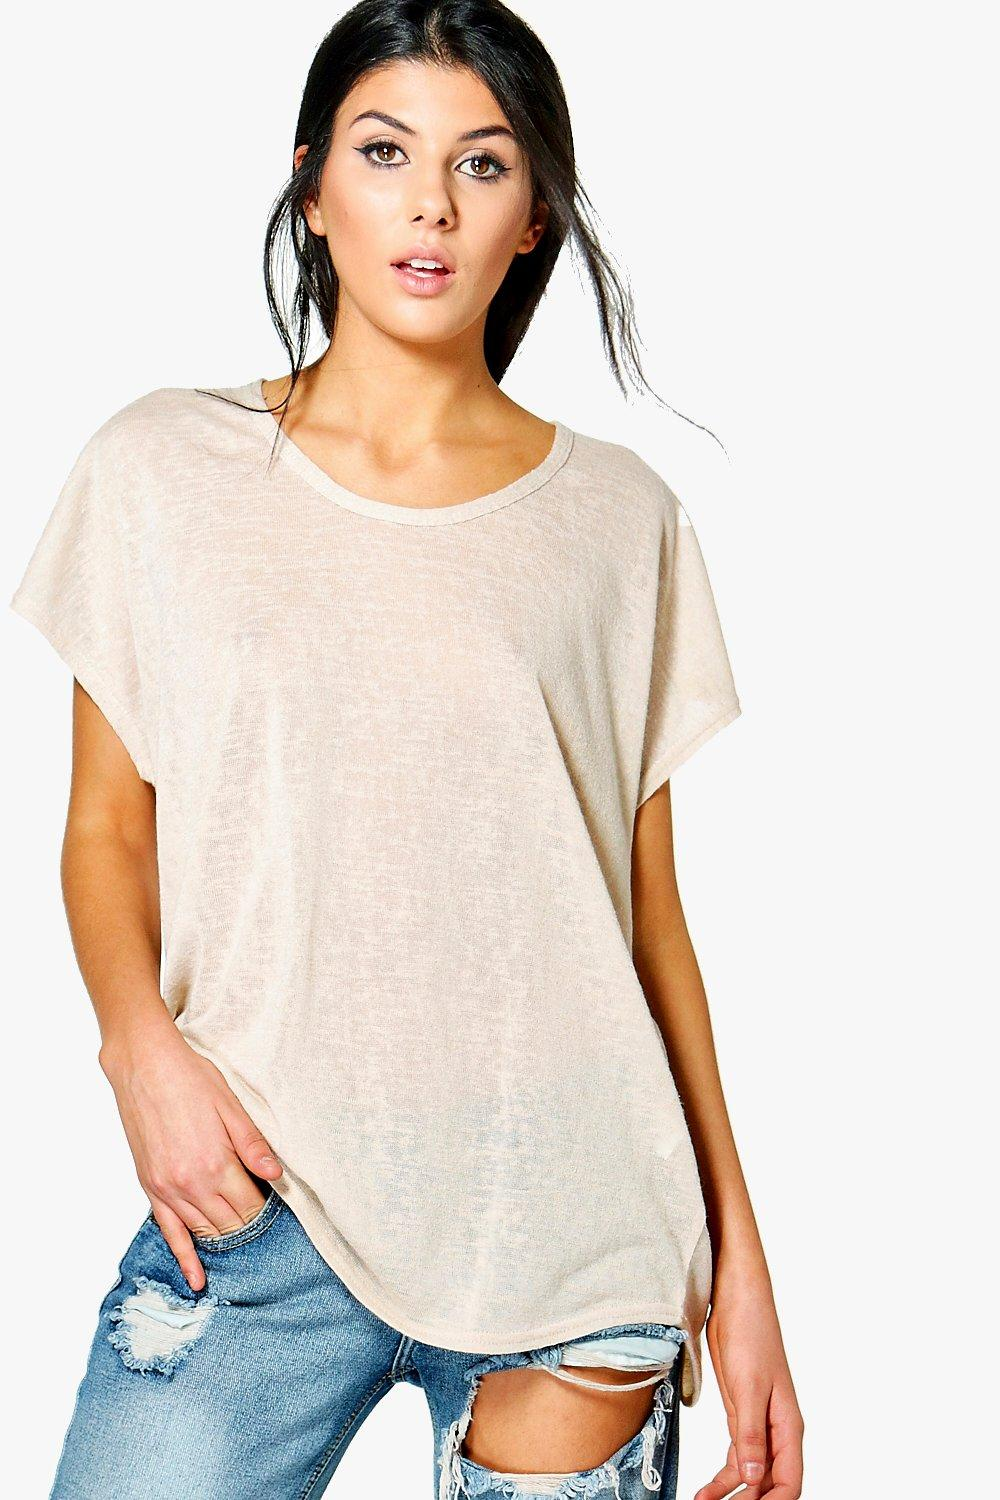 T-Shirts. T-shirts - the classic, cool, and wonderfully chic wardrobe staple! Choose the perfect statement tee from our enviable collection and join the hottest trend since lycra.